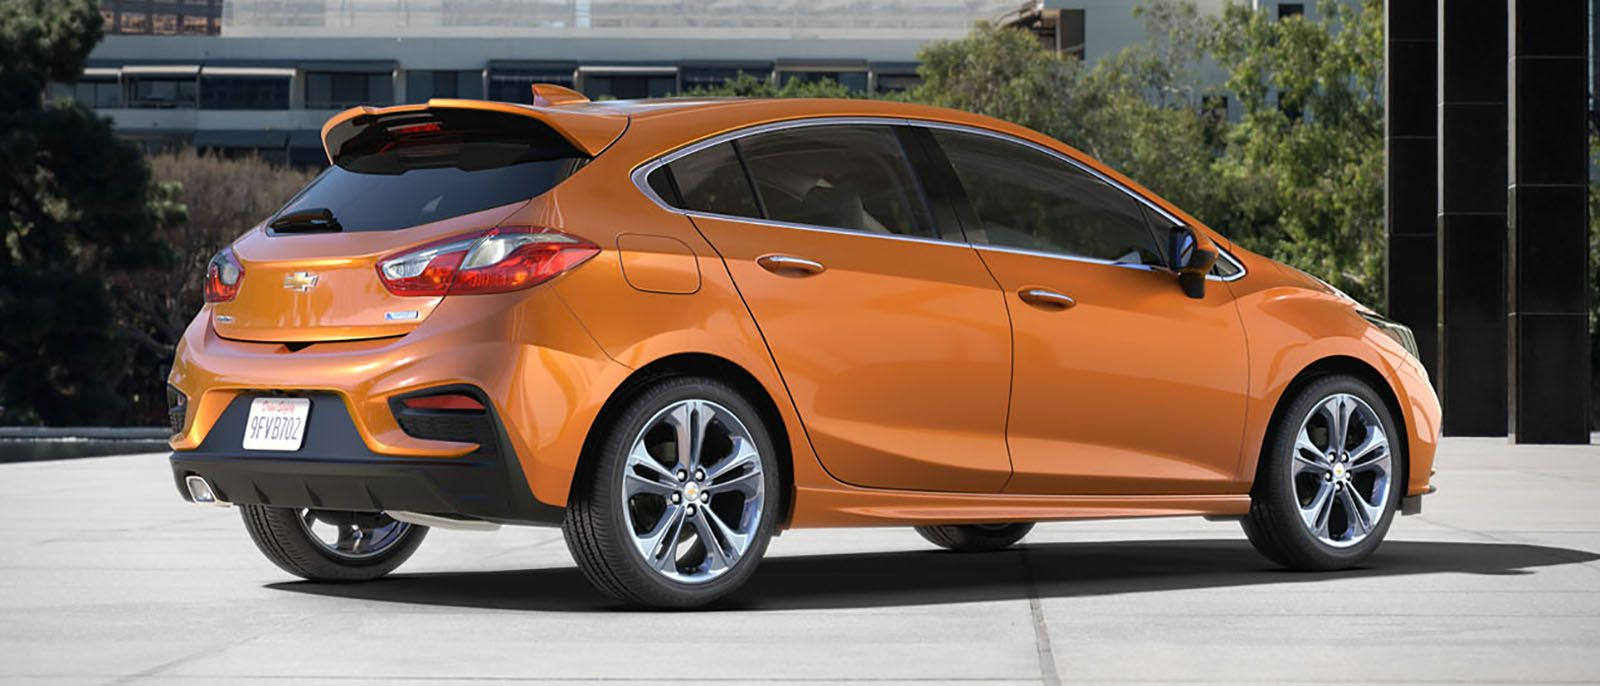 Introducing The 2017 Chevrolet Cruze Hatchback Chevy Cruze